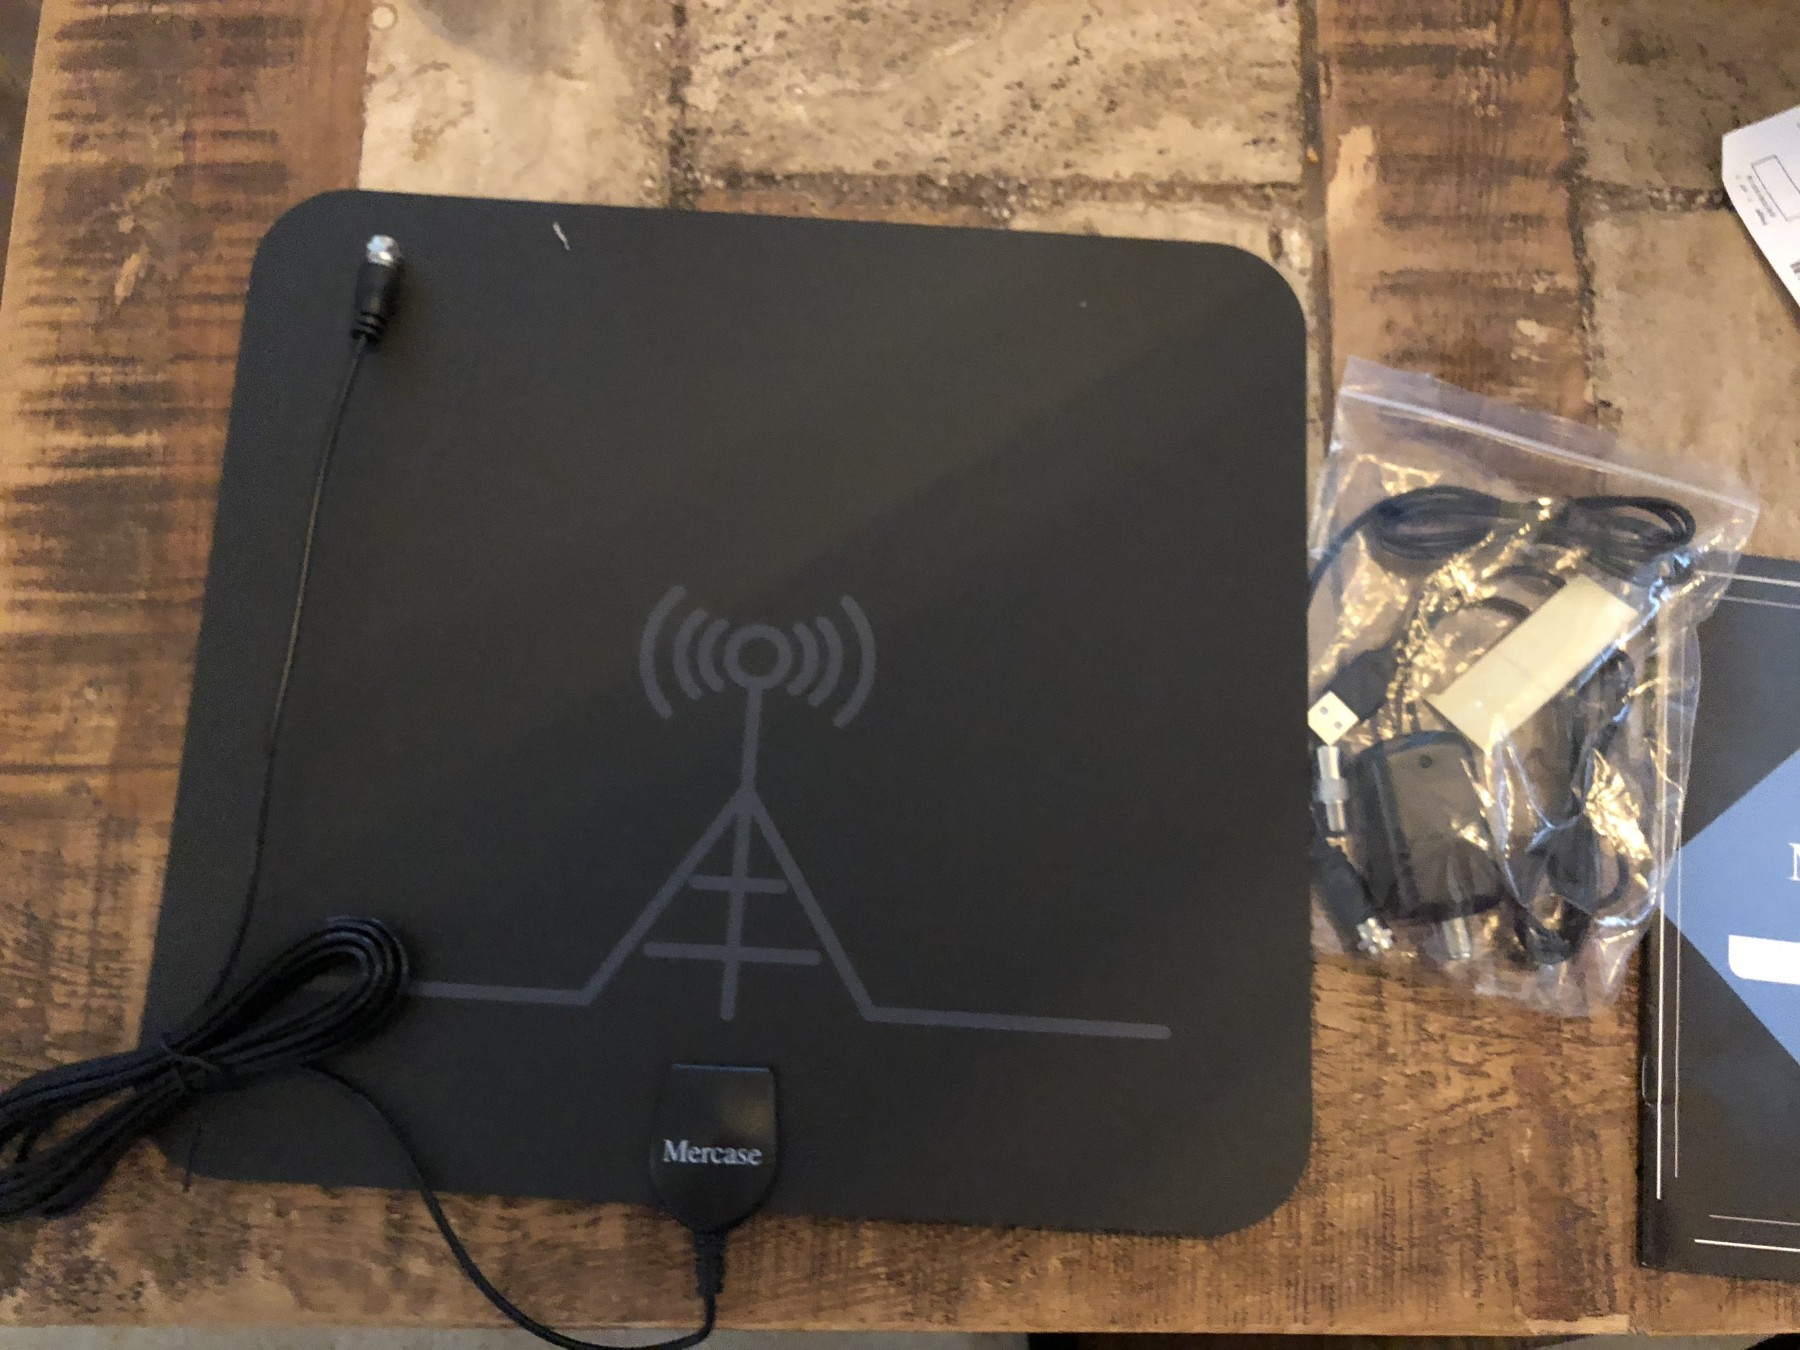 Smart TV Antenna for Digital Television